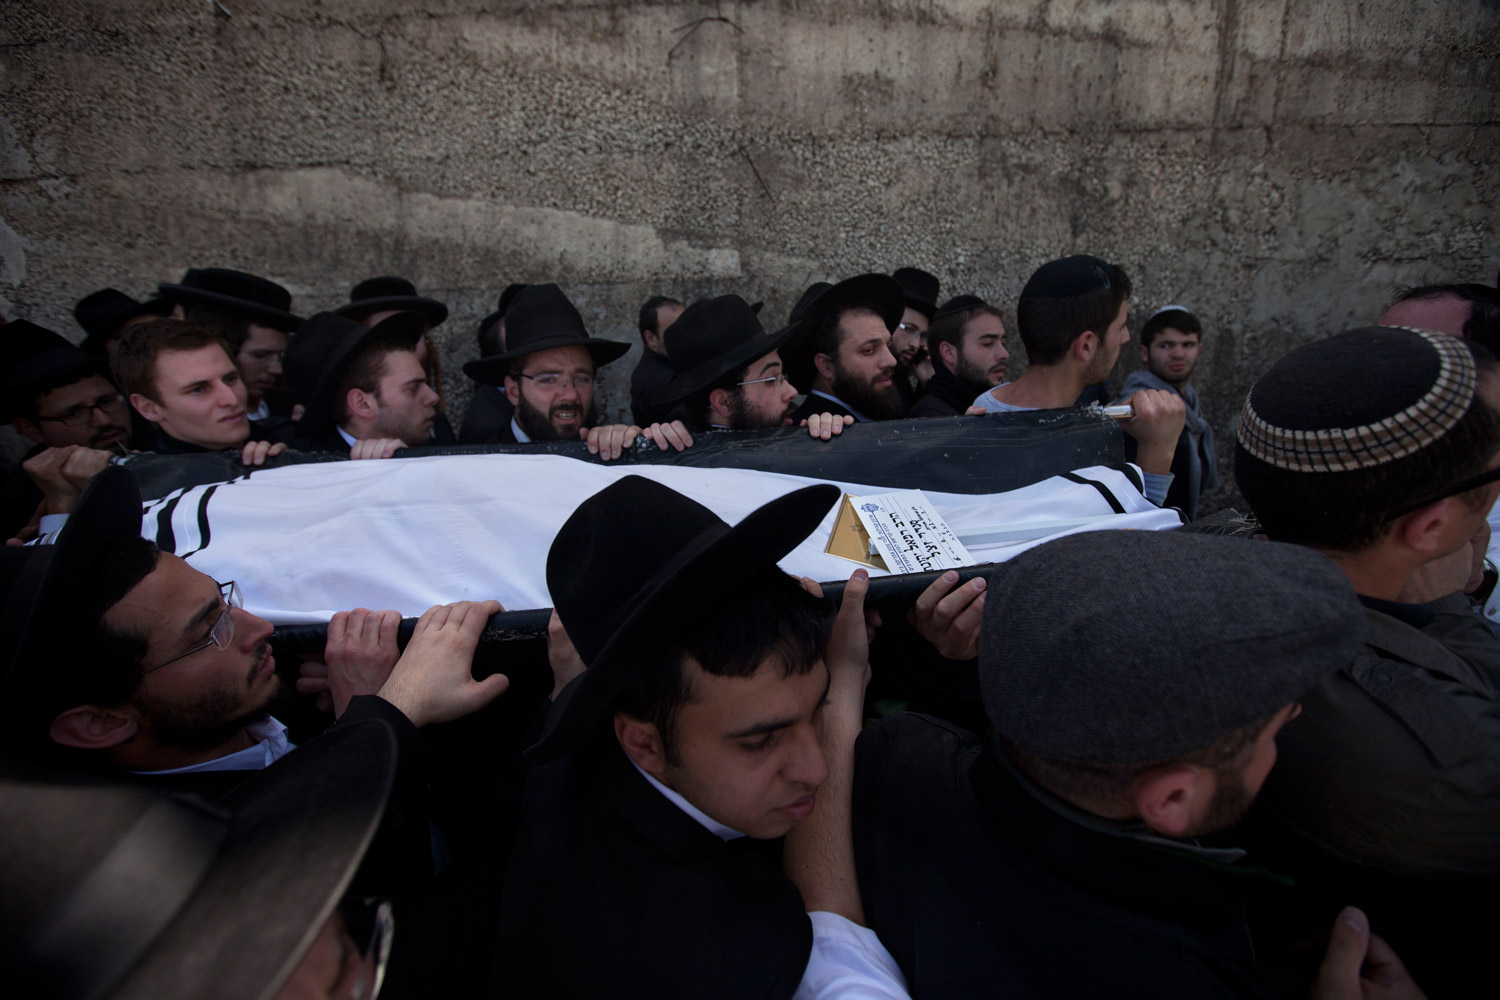 March 21, 2012. Family members and friends carry the body of Rabbi Jonathan Sandler during the funeral of victims of the school shooting in Toulouse. A rabbi and three children gunned down at the Jewish school in France were buried Wednesday in a Jerusalem cemetery.